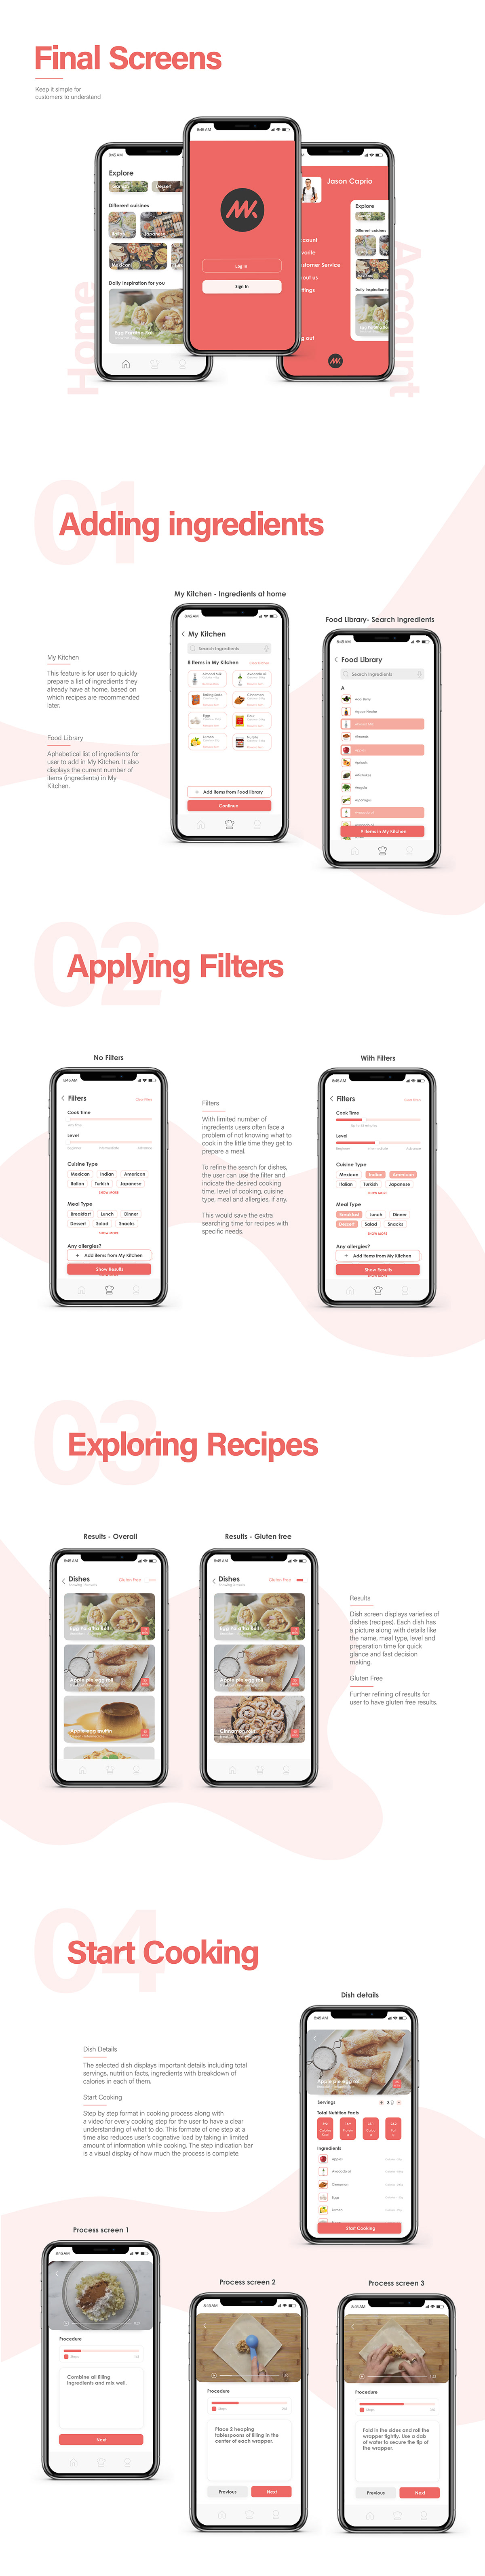 food app recipes user experience user interface